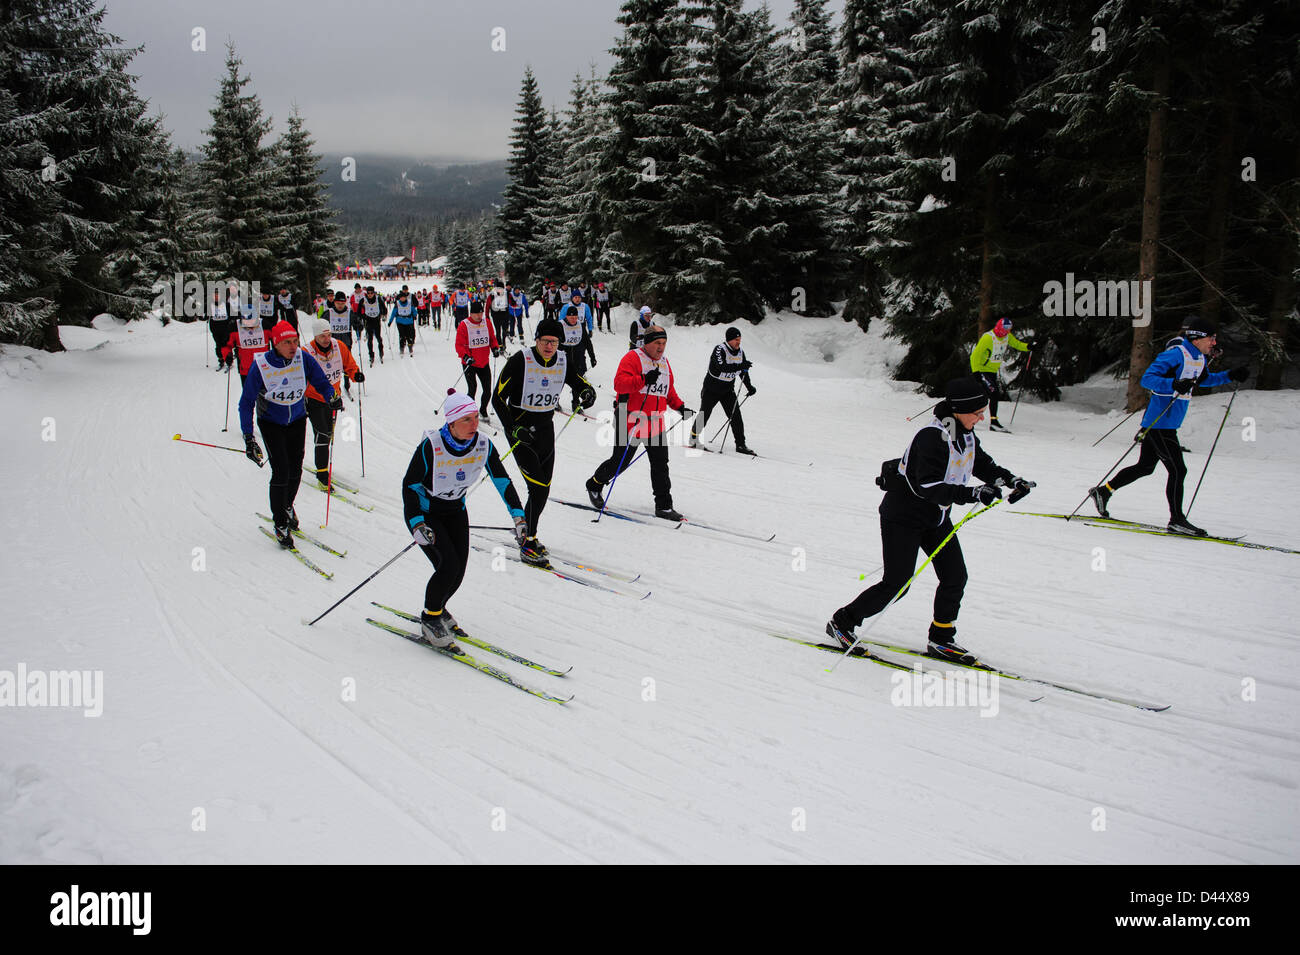 Cross-country skiers during the Bieg Piastow cross-country race, Jakuszyce, Poland. - Stock Image